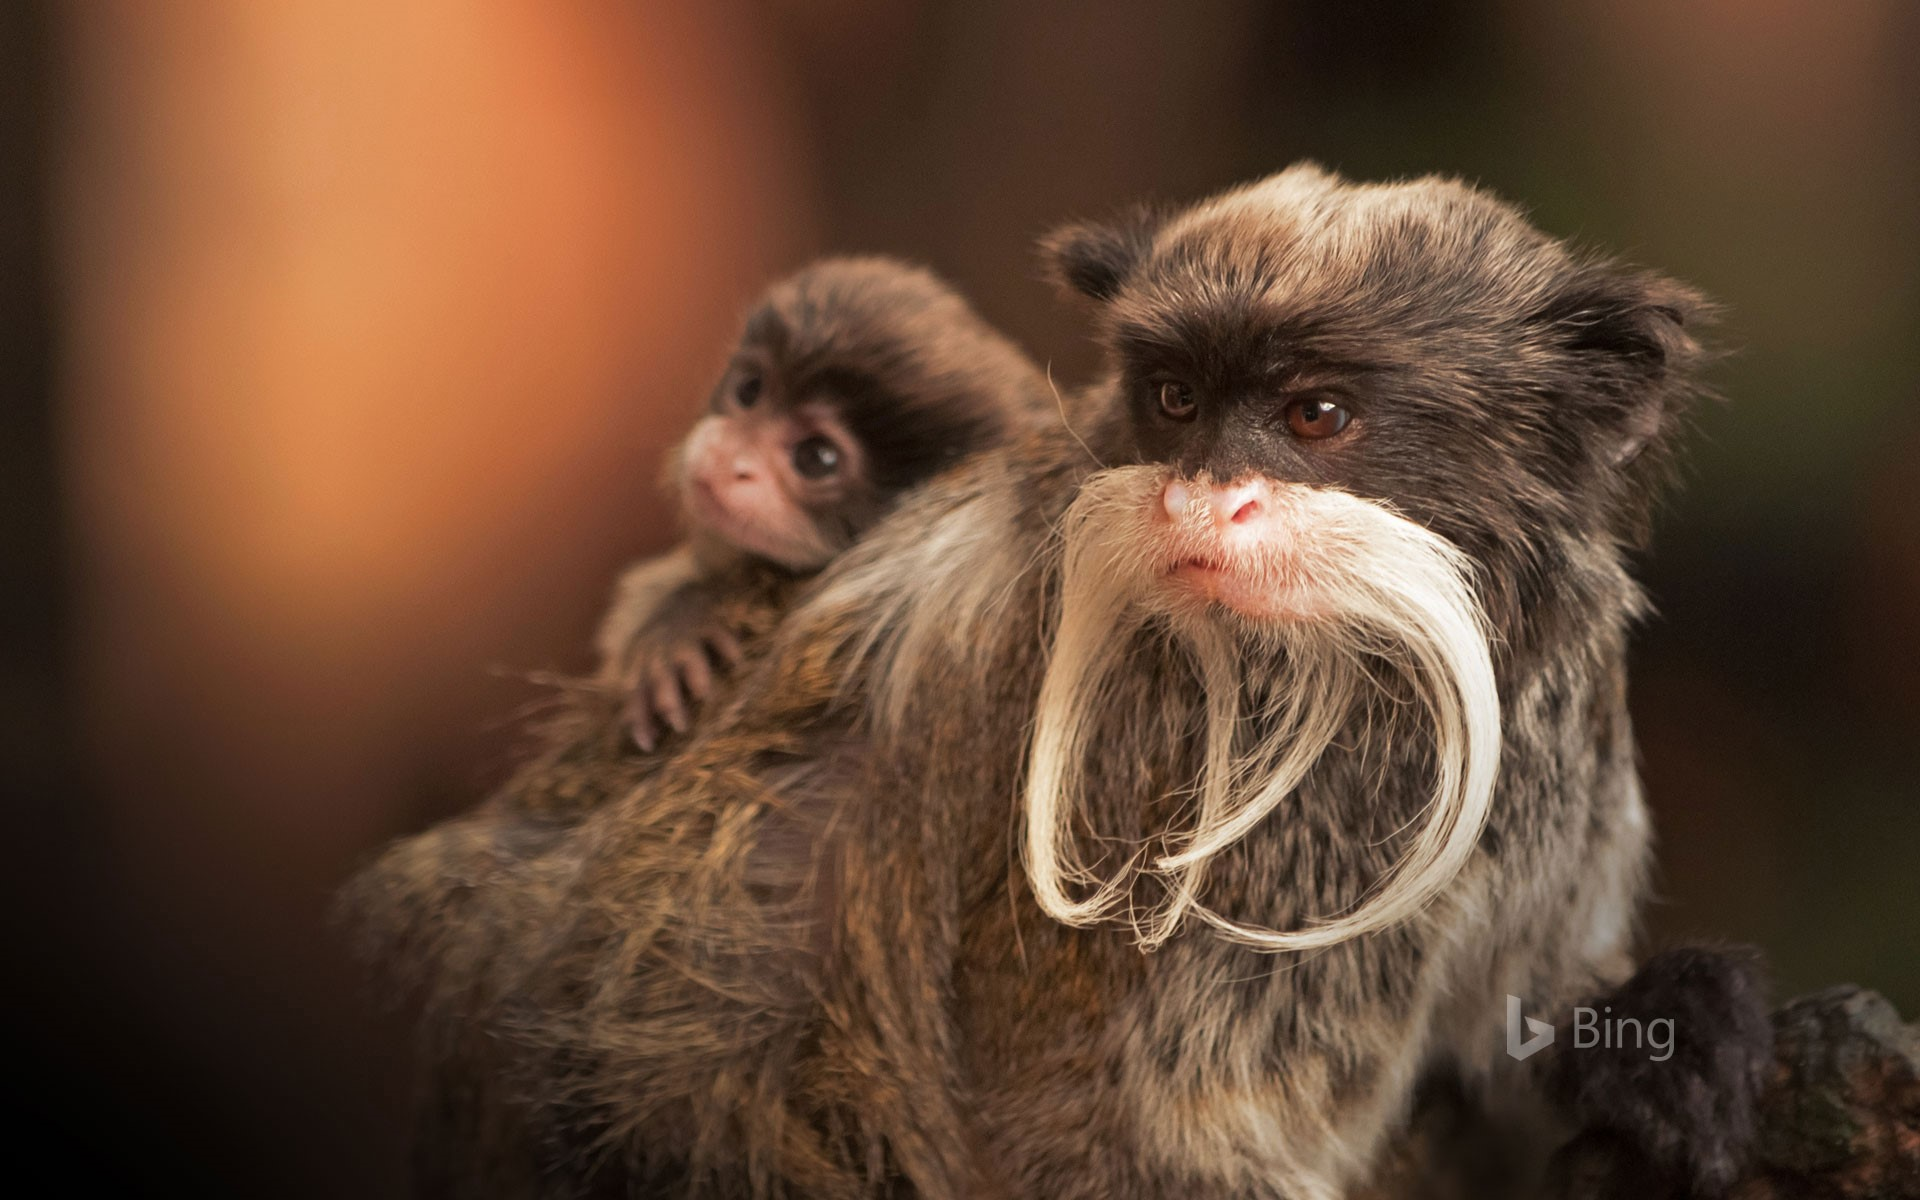 A bearded emperor tamarin monkey carrying a baby